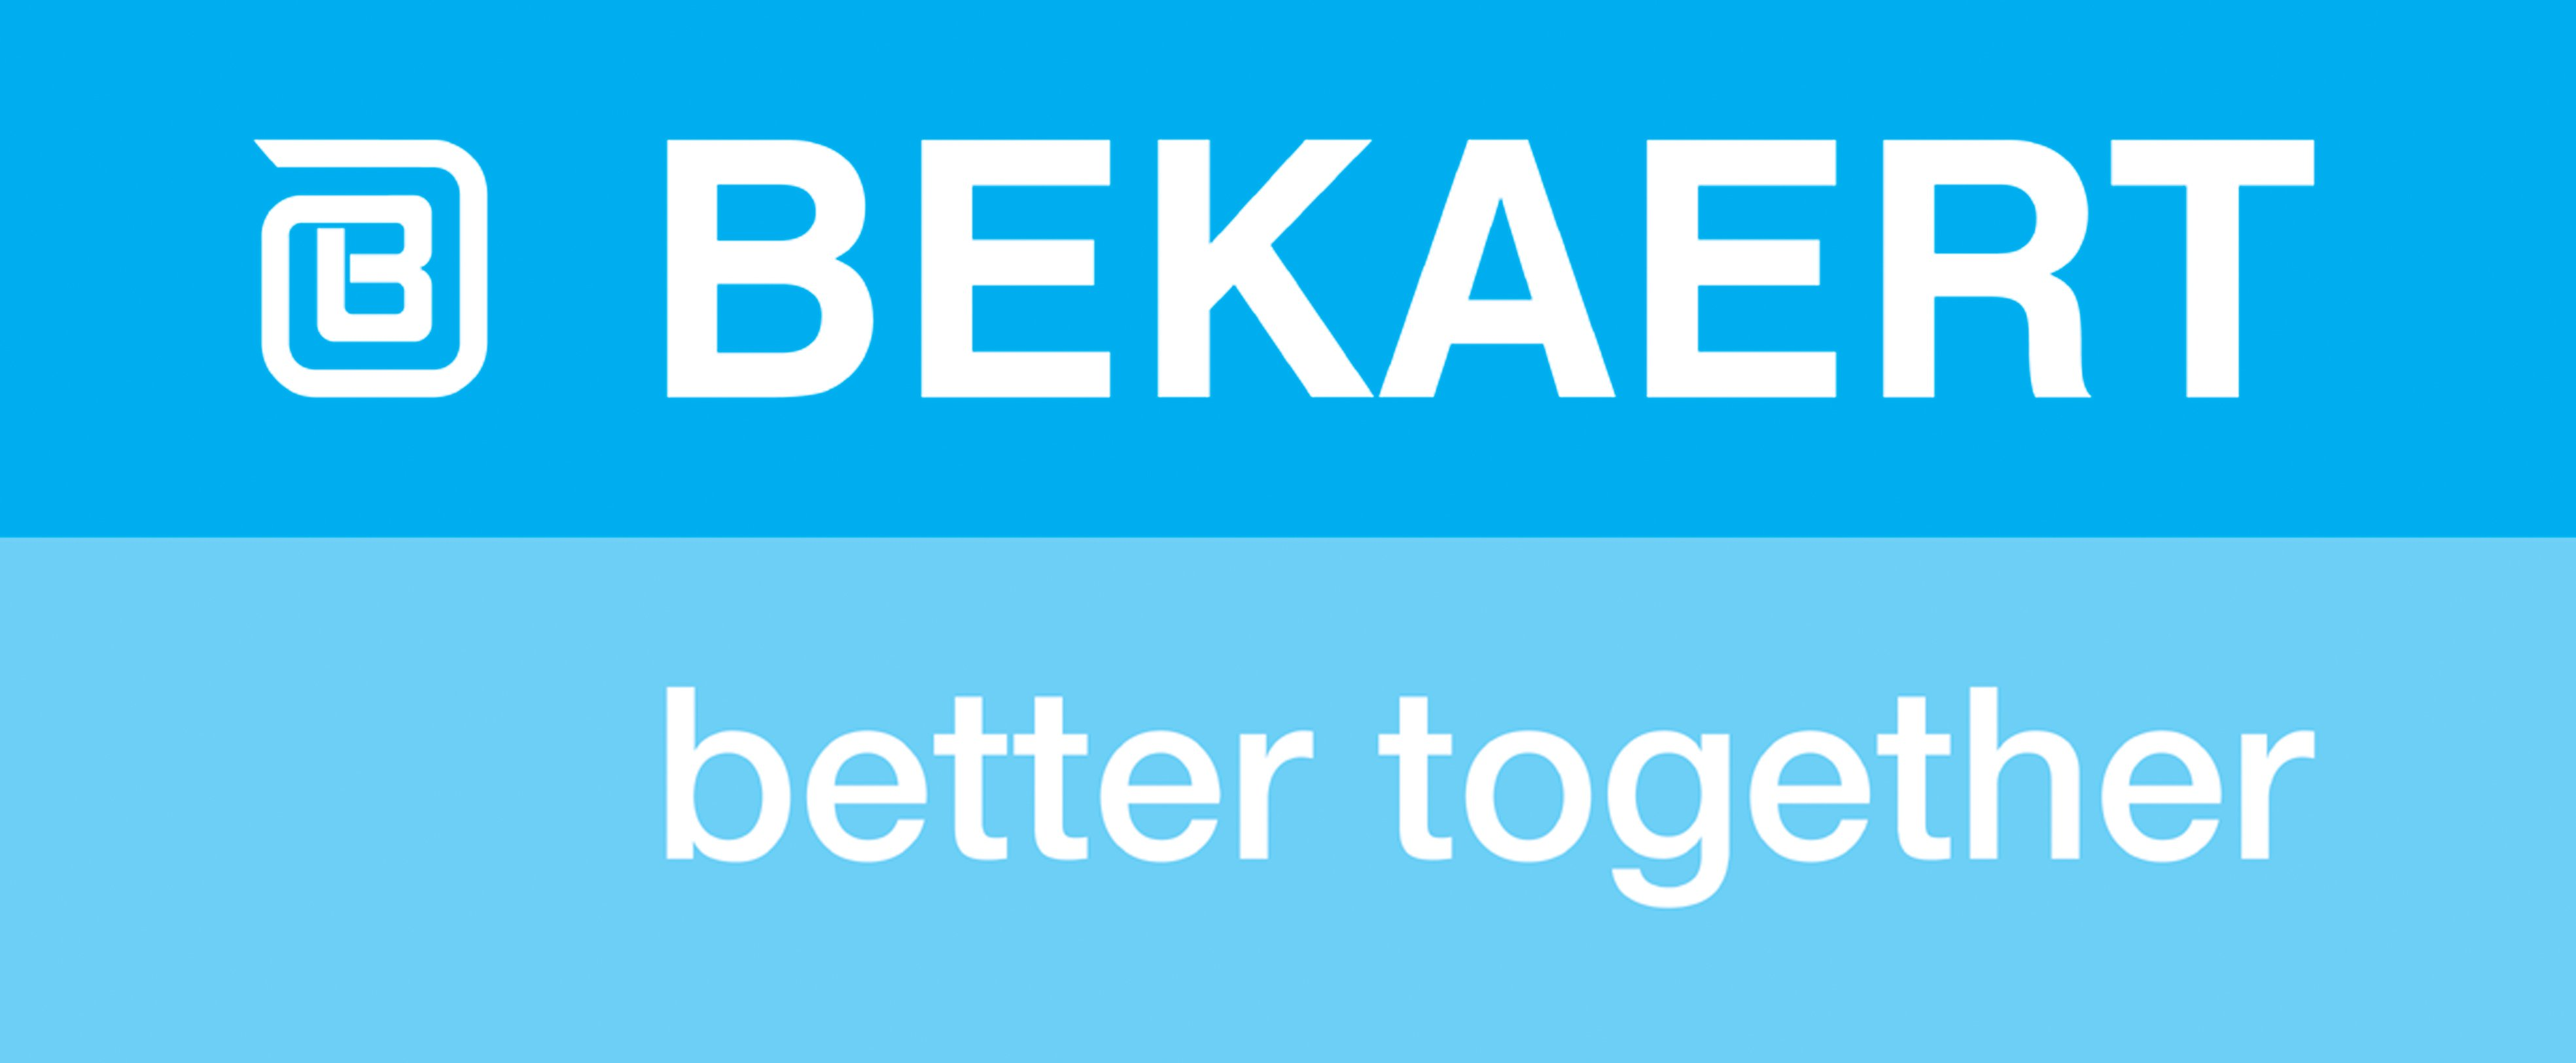 Logo-bekaert-better-together-CYAN-RGB1